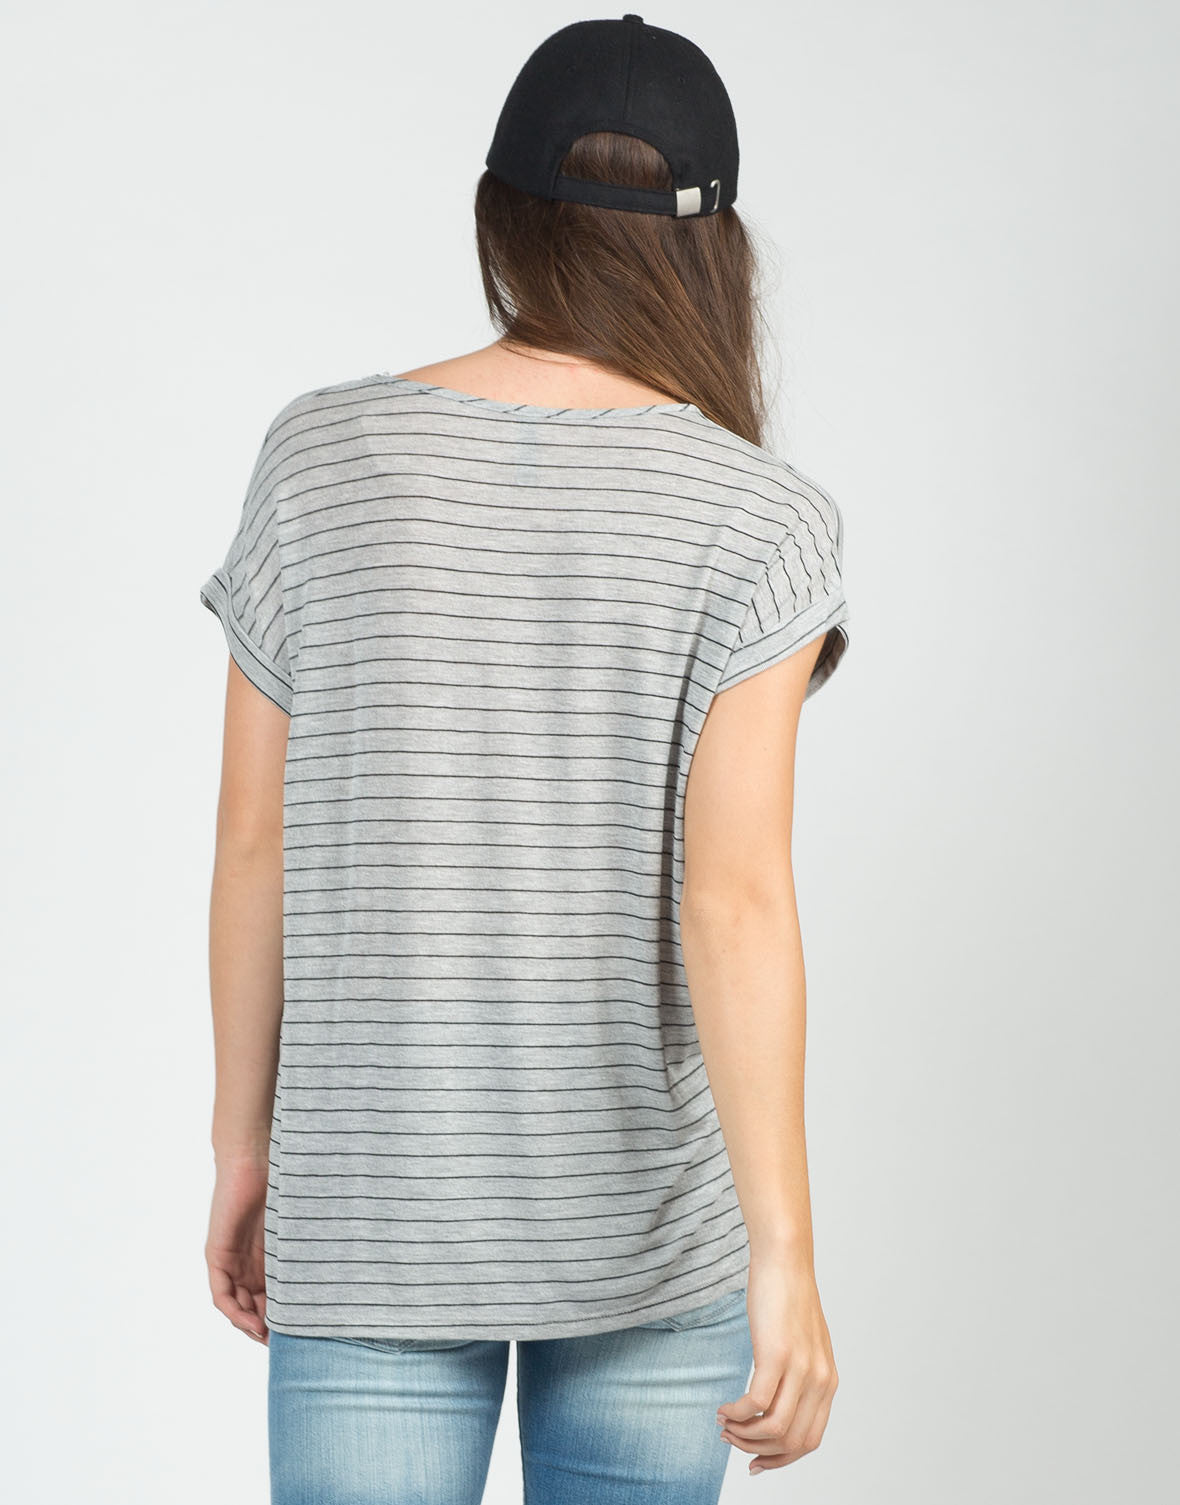 Back View of Knitted Stripe Tee